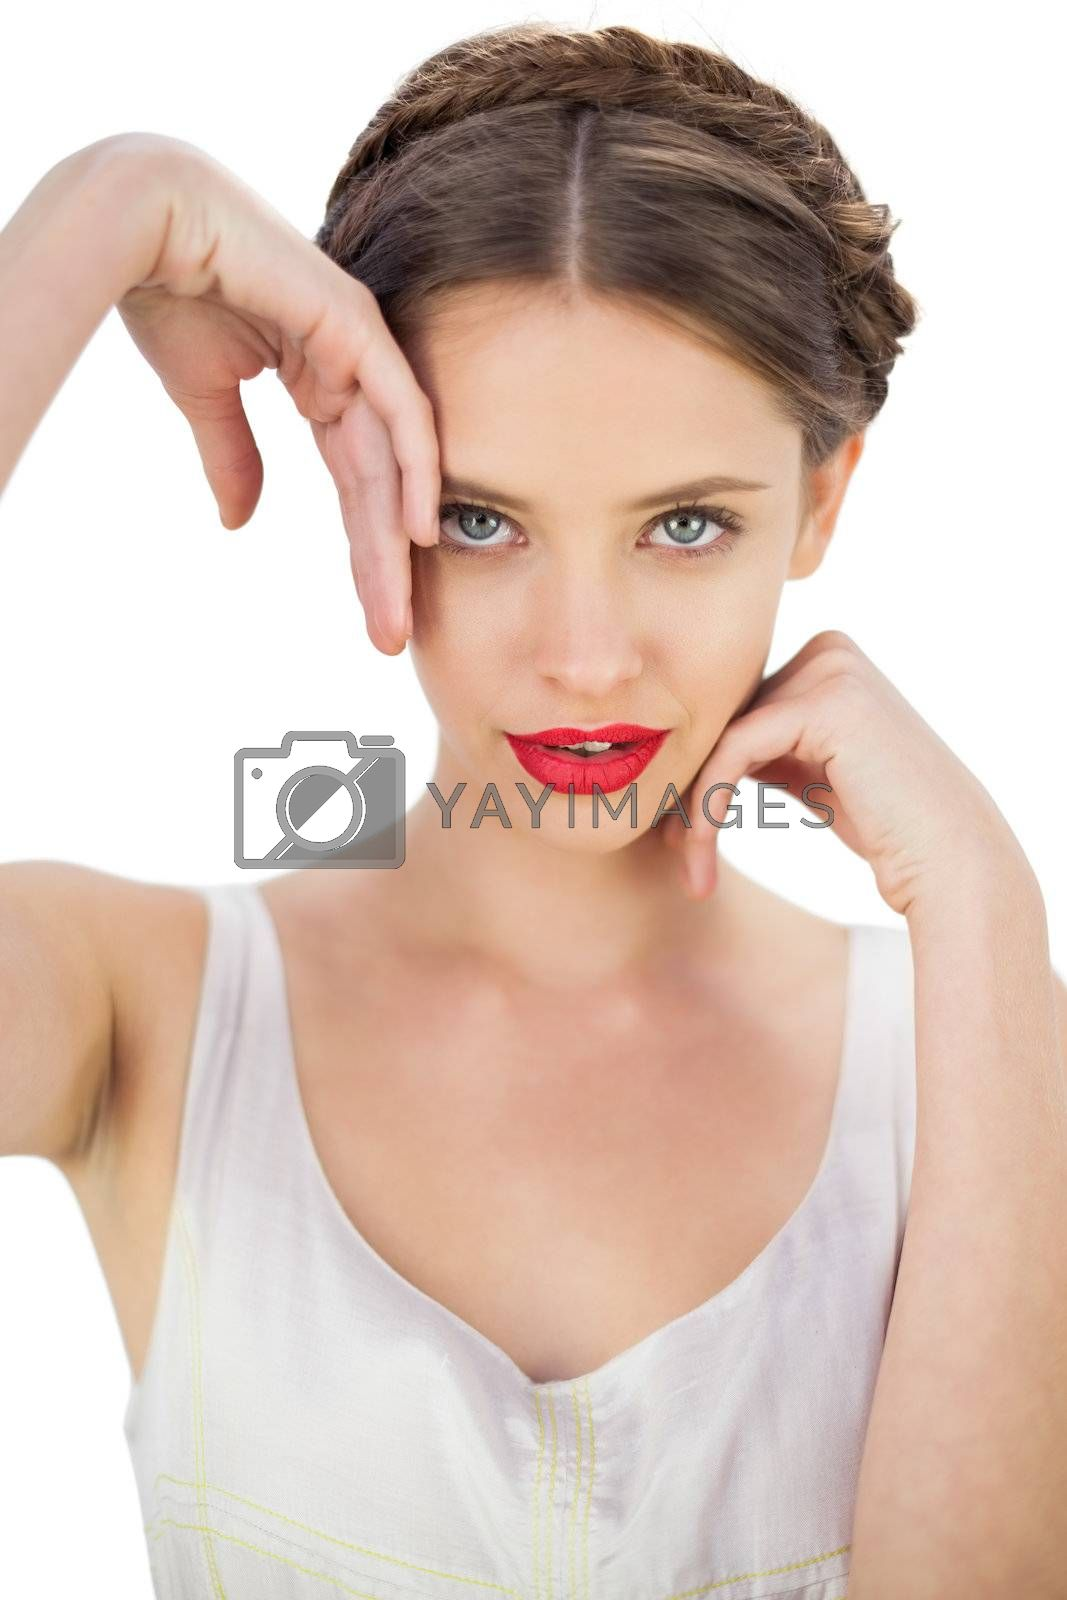 Smiling model in white dress posing touching her temple and her cheek by Wavebreakmedia